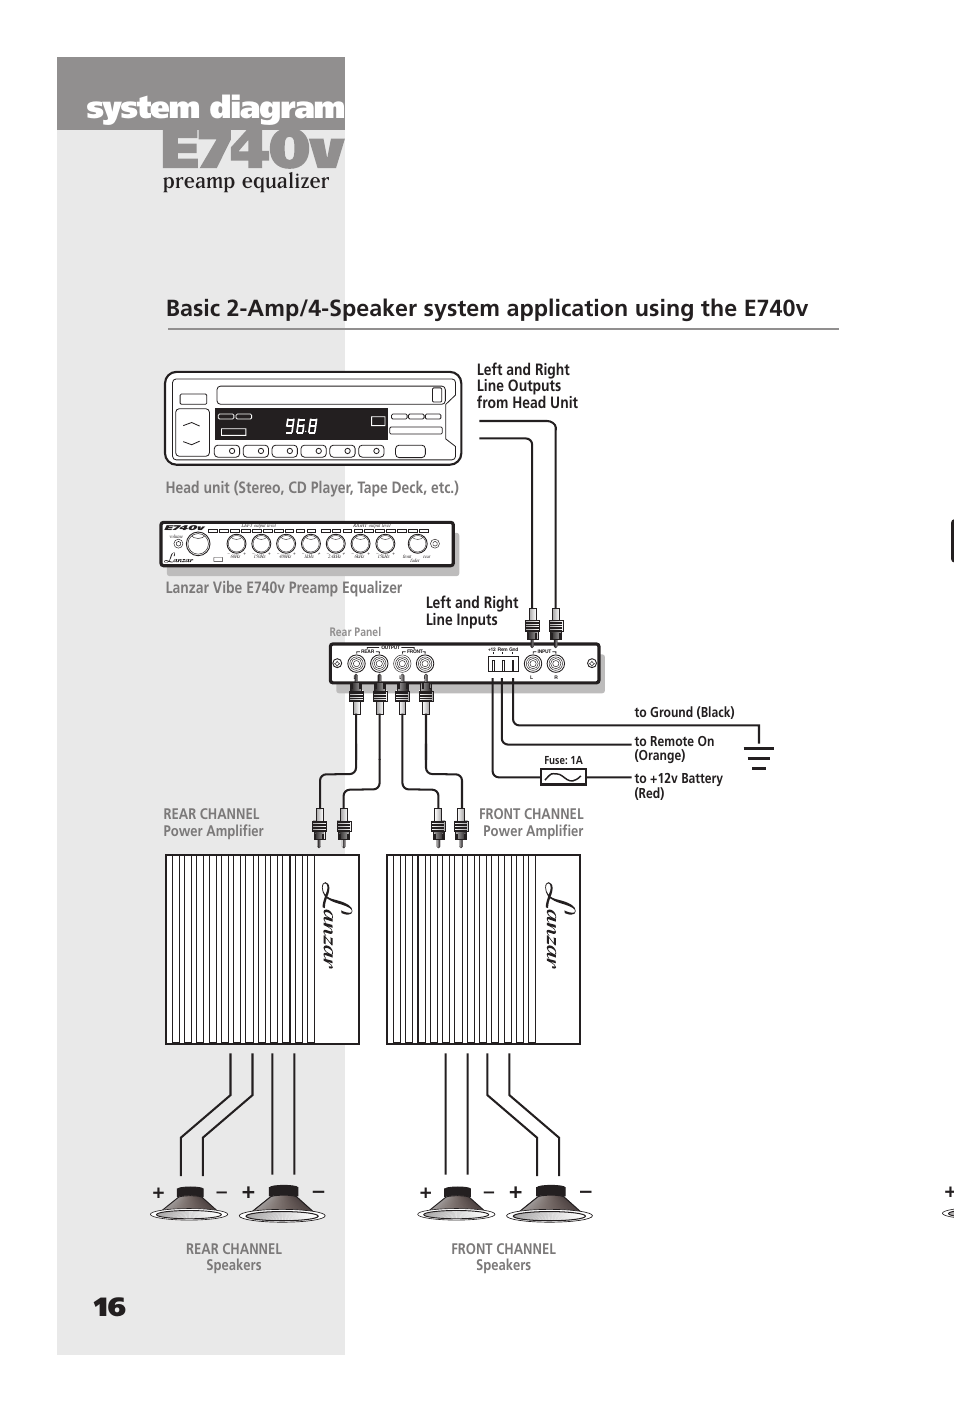 System diagram, Preamp equalizer, Head unit (stereo, cd player, tape deck